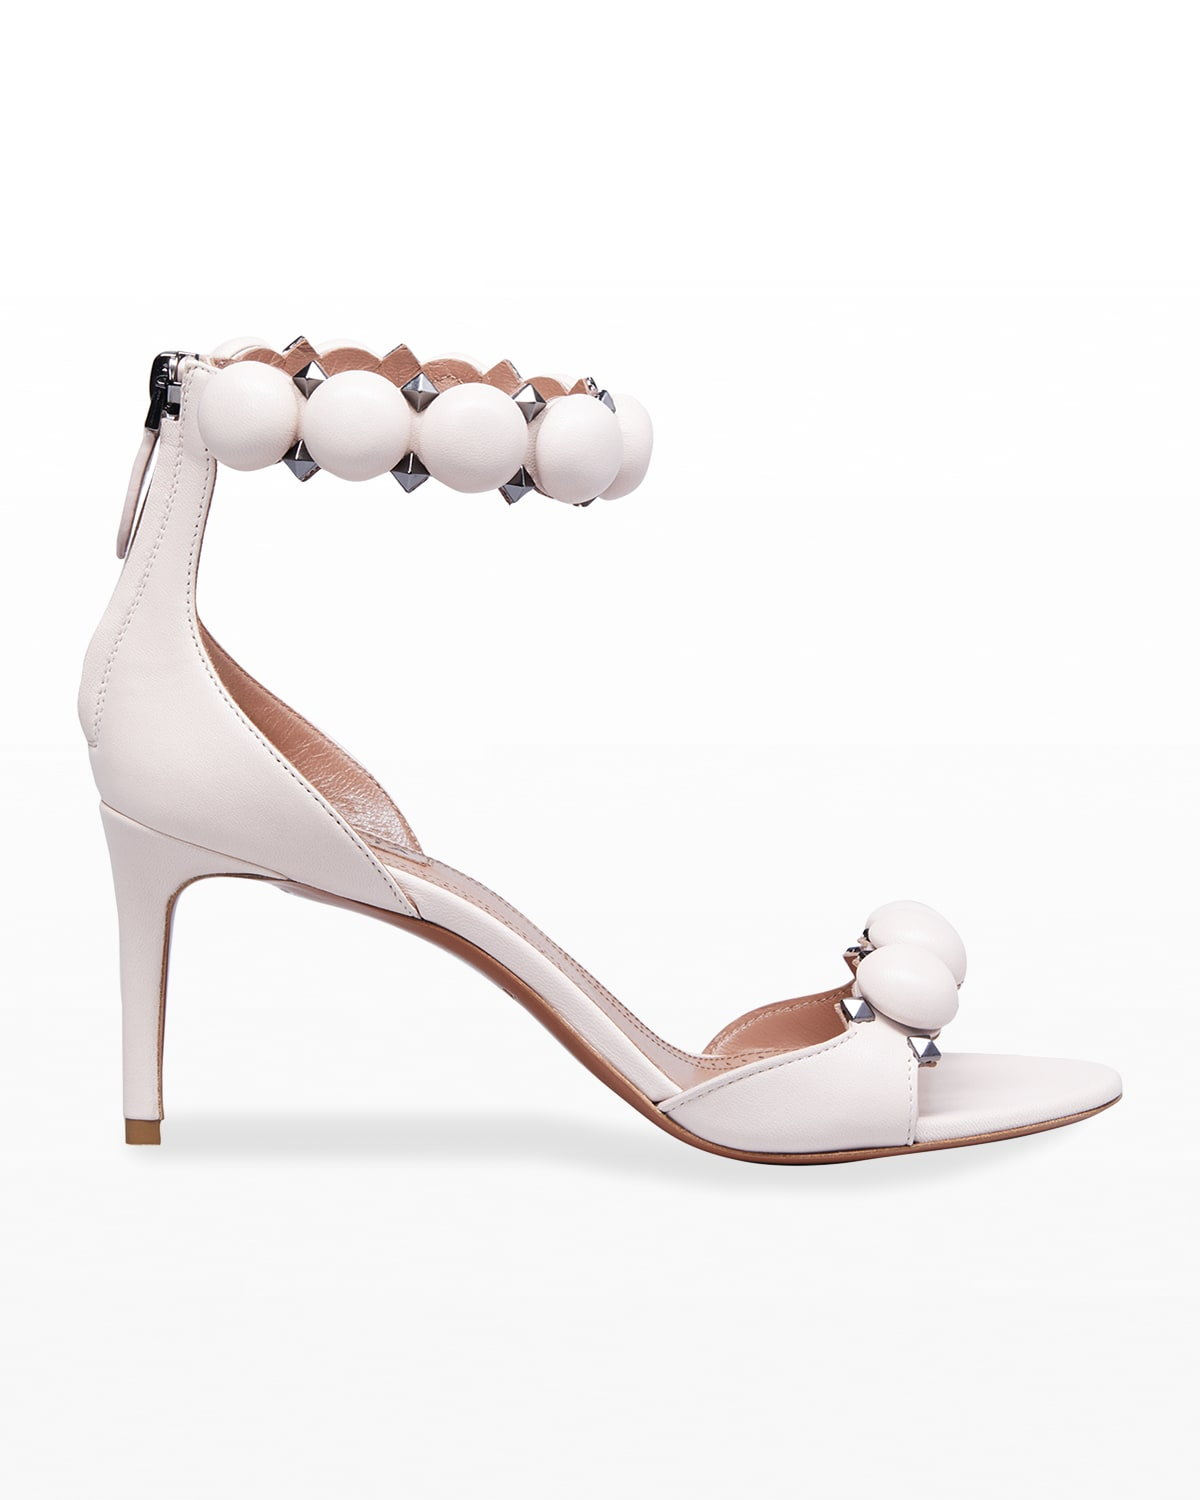 Bombe Stud Leather Ankle-Wrap High-Heel Sandals